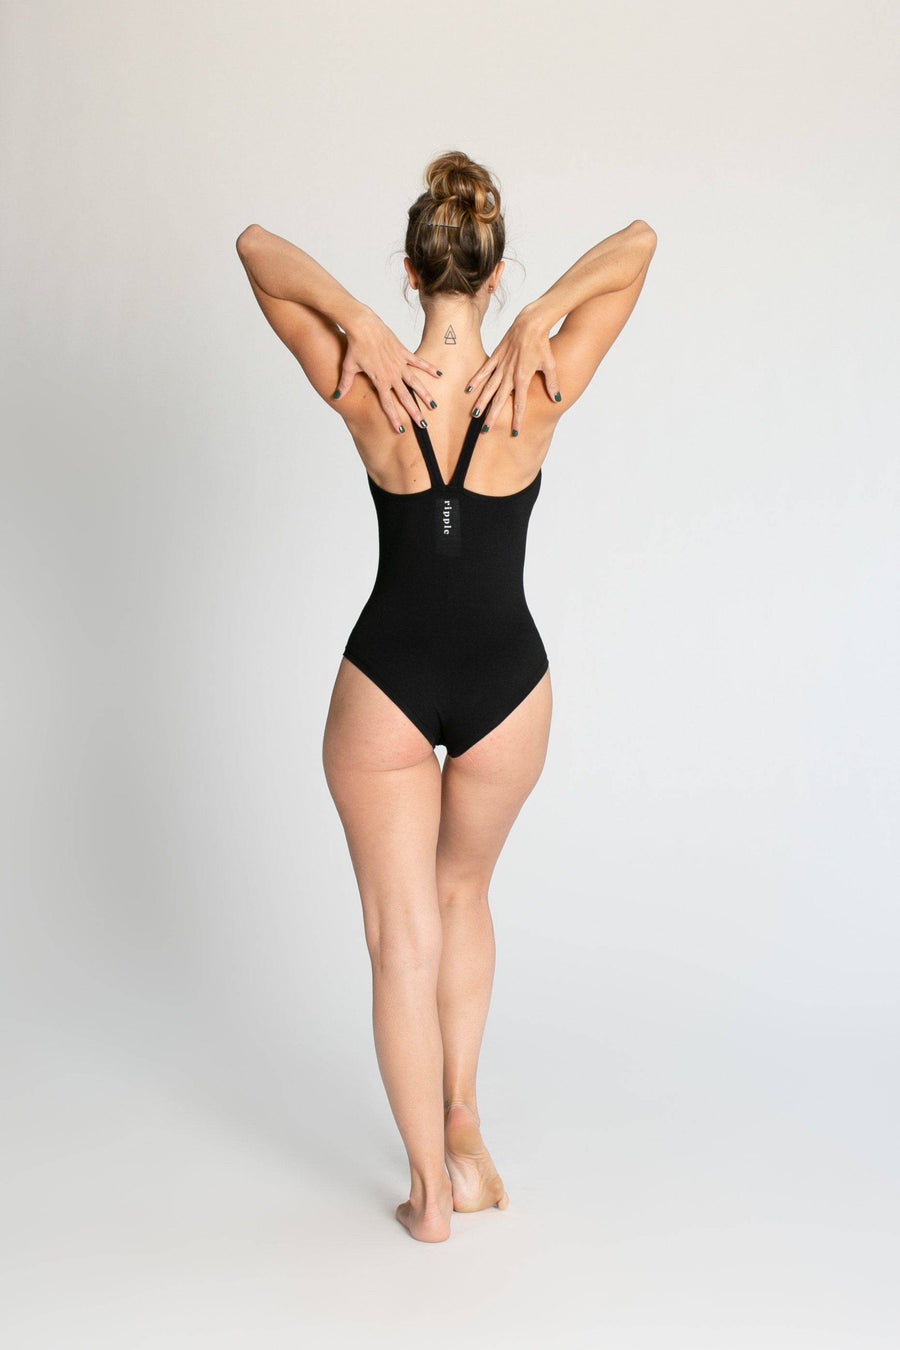 Ballerina Leotard womens clothing rippleyogawear XS black